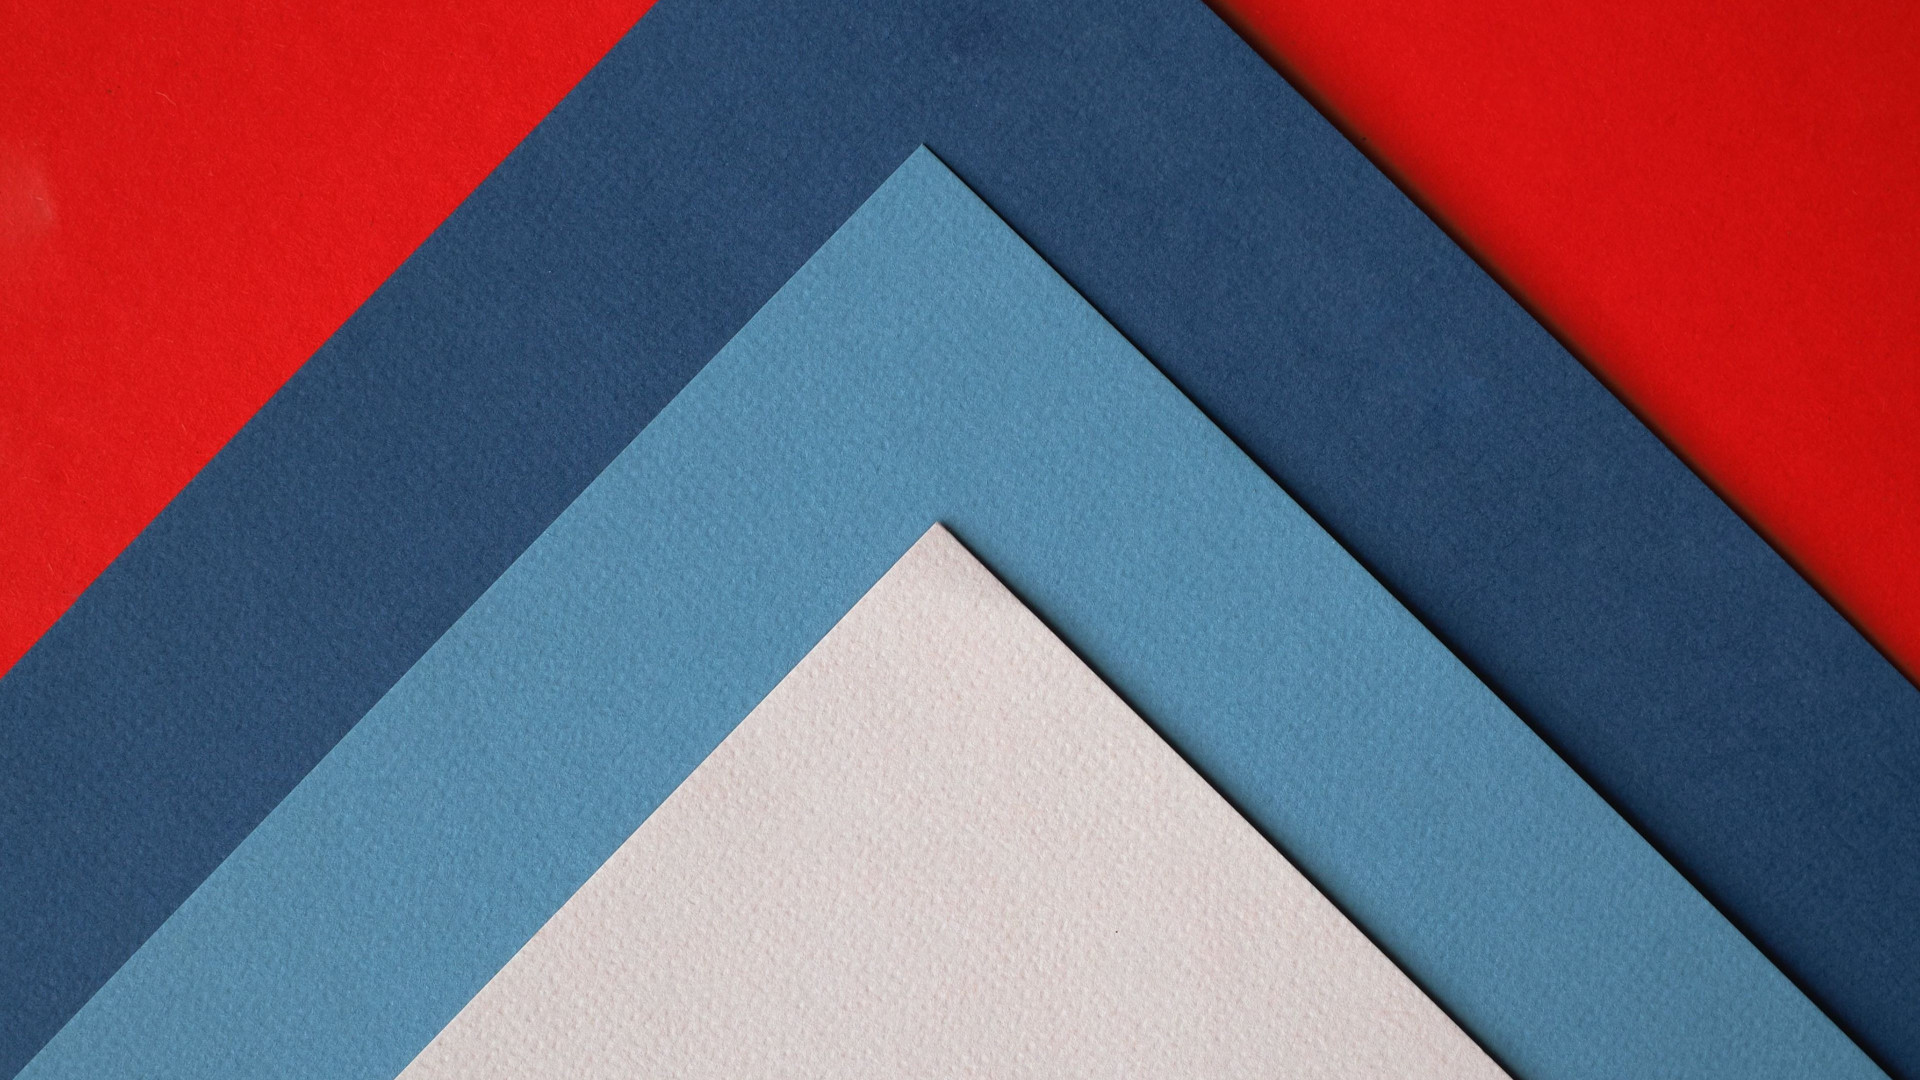 Triangle Card Layers - Zoom Virtual Background